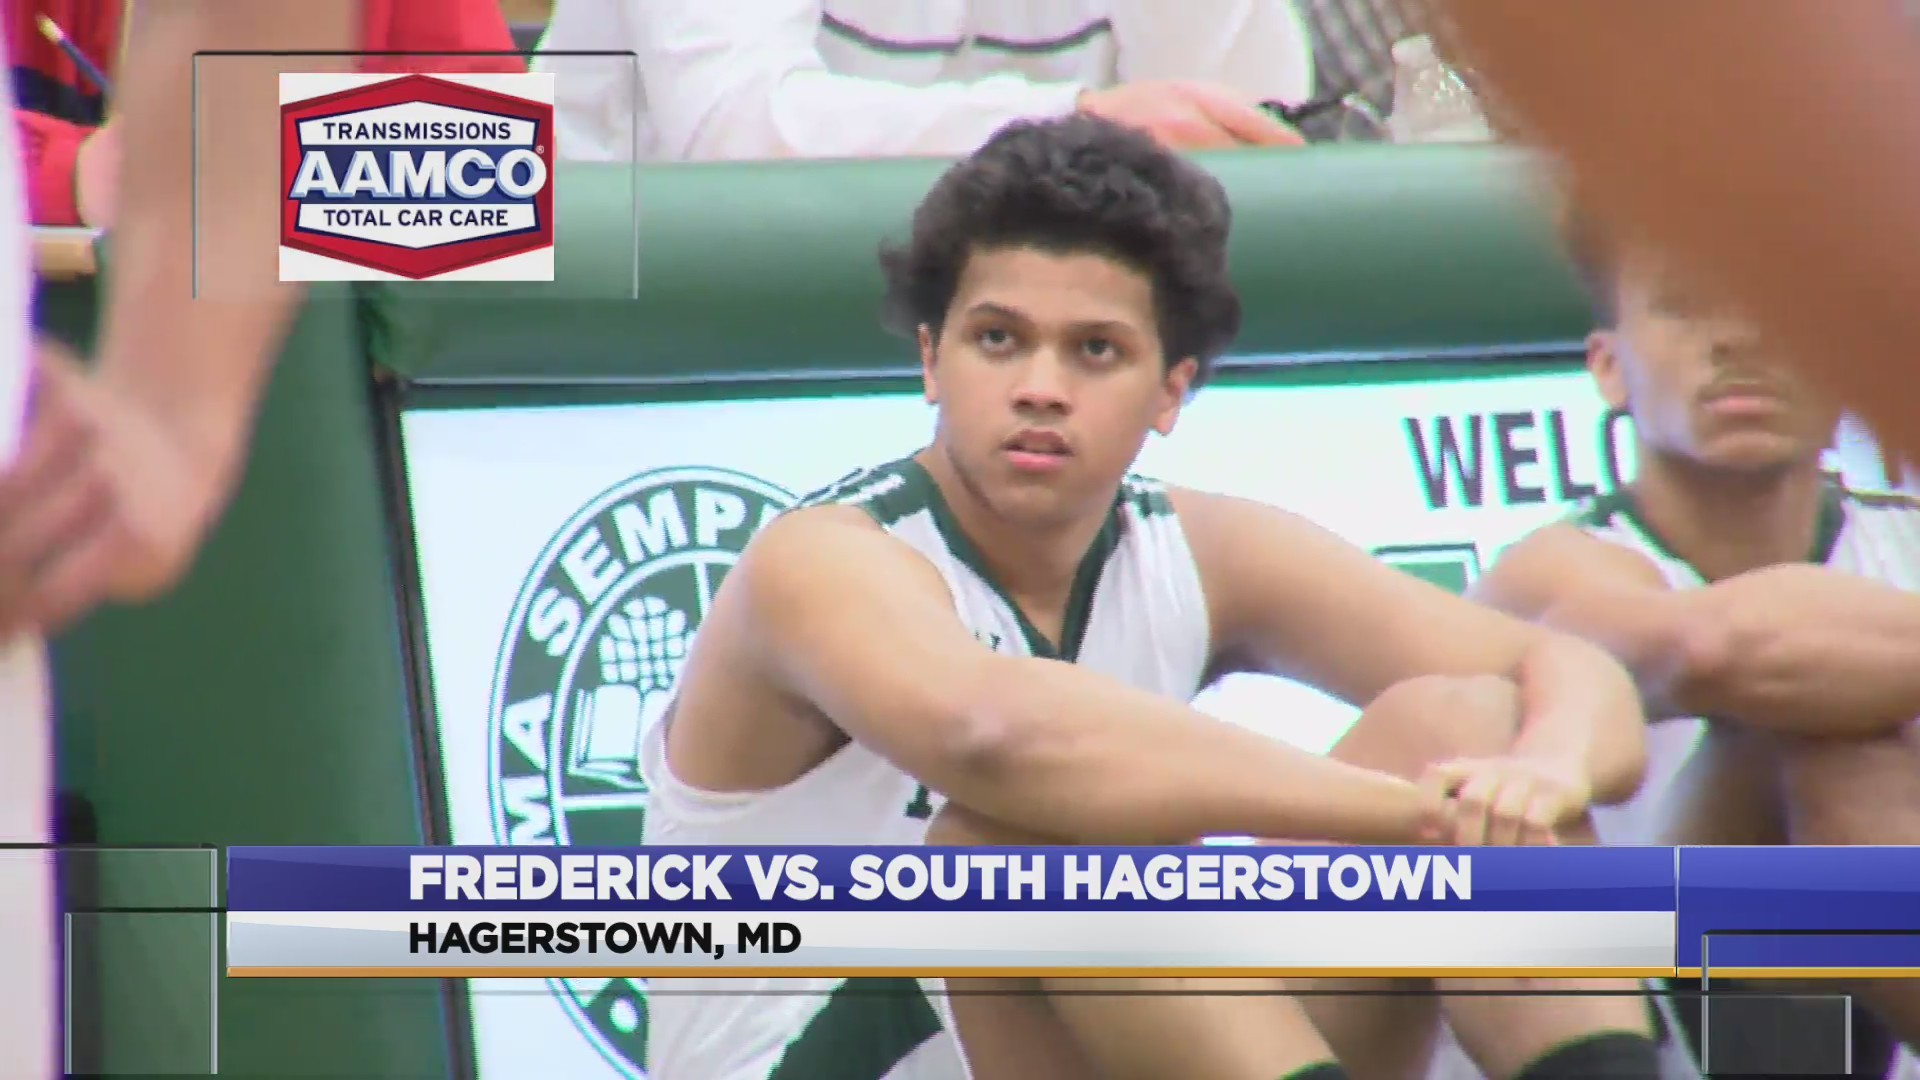 Frederick_vs__South_Hagerstown_0_20190220040302